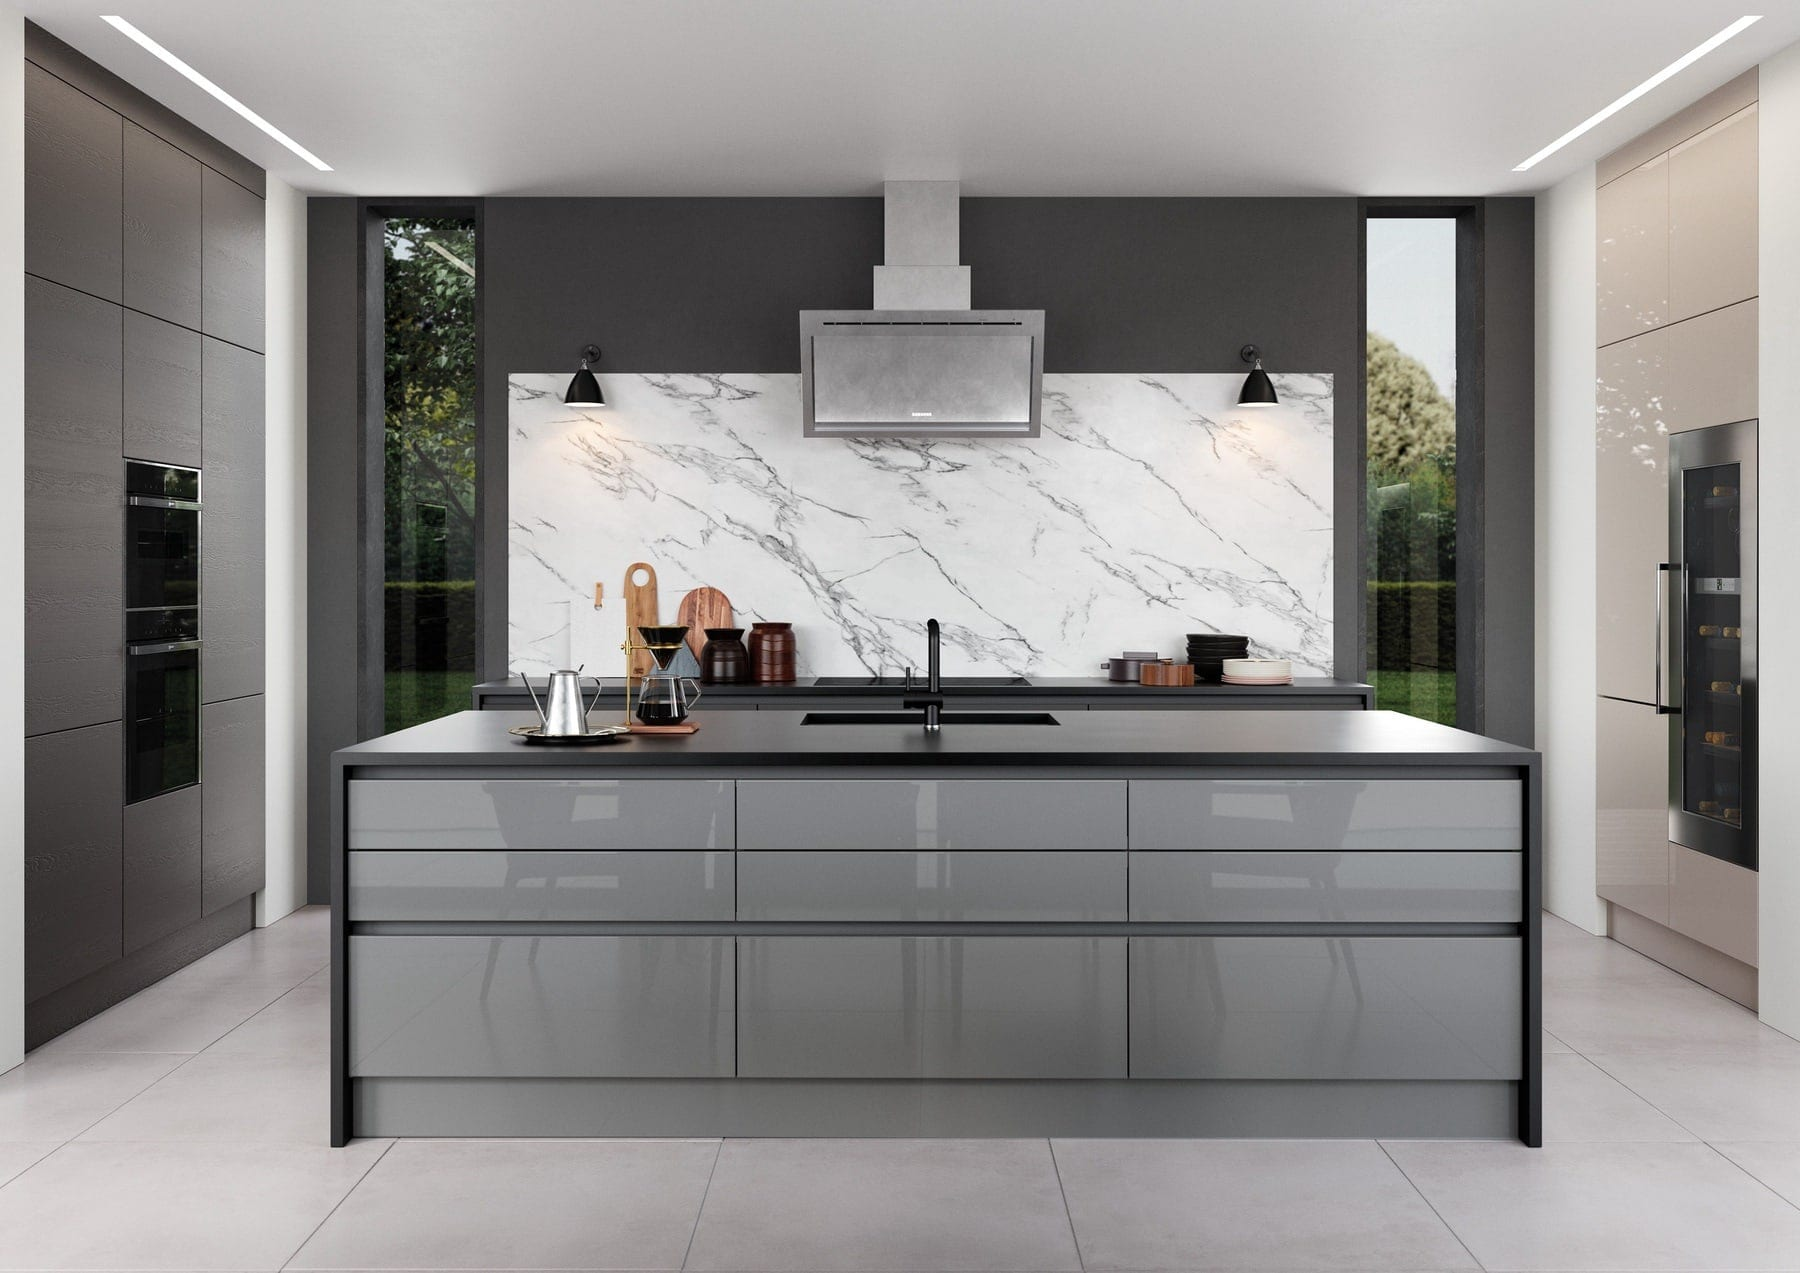 Zola Gloss Dust Grey And Tavola Carbon Kitchen With Island   Colour House Interiors, Caterham